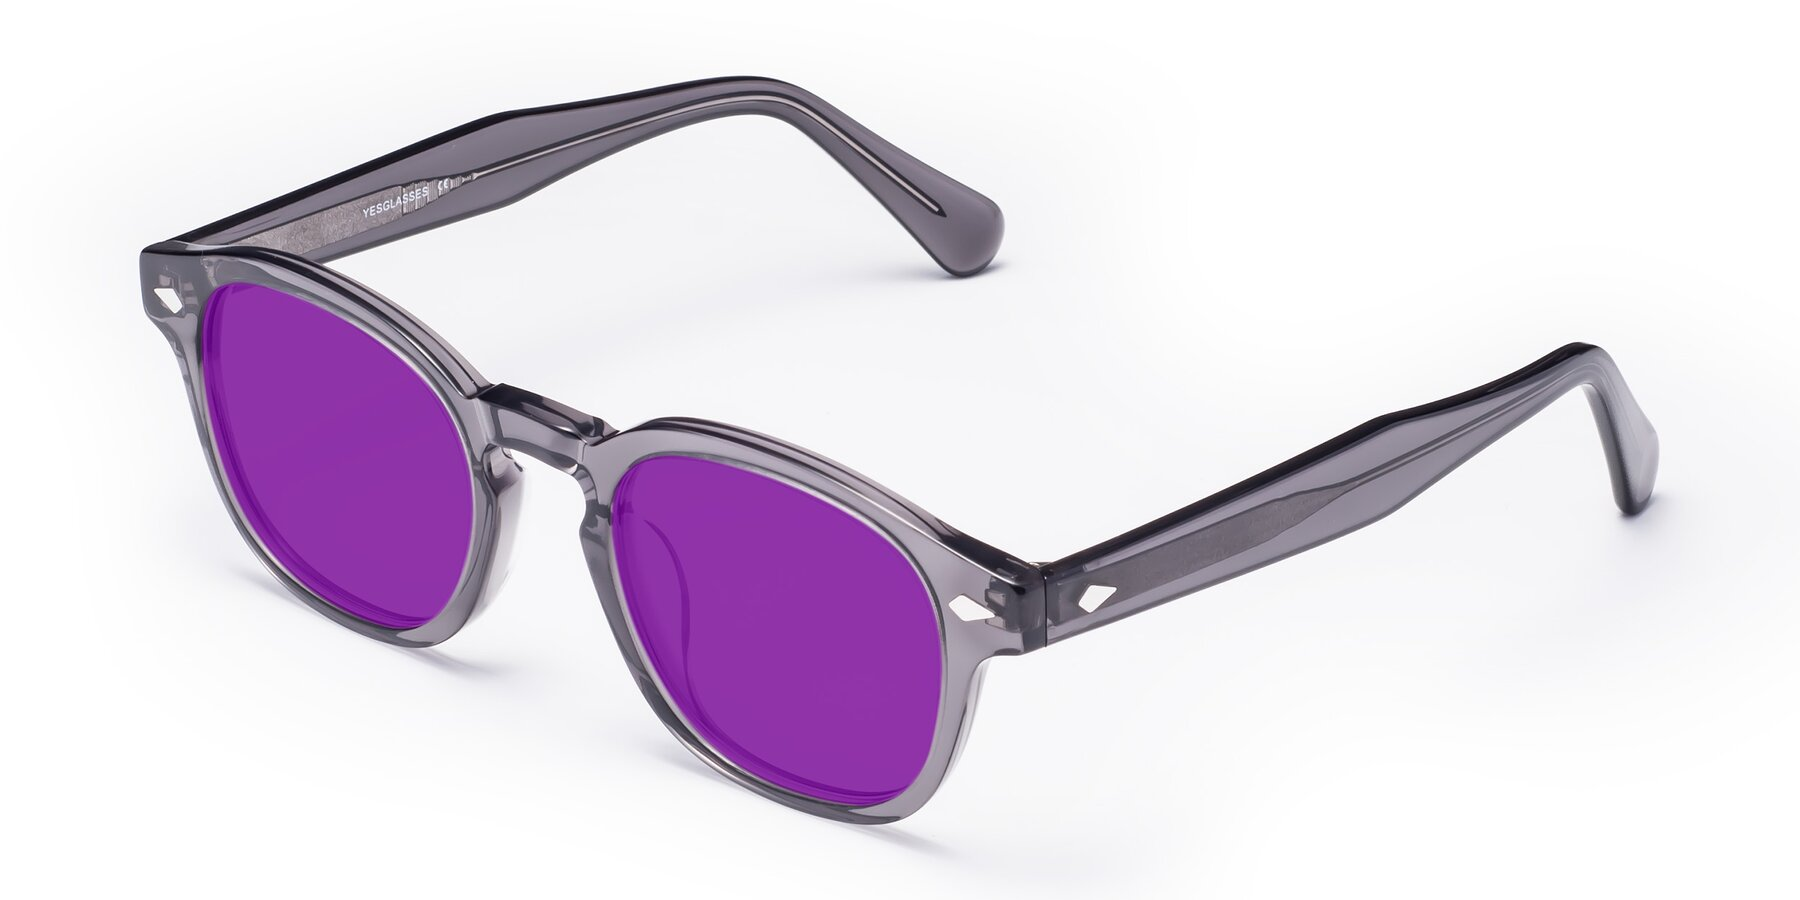 Angle of WALL-E in Translucent Gray with Purple Tinted Lenses